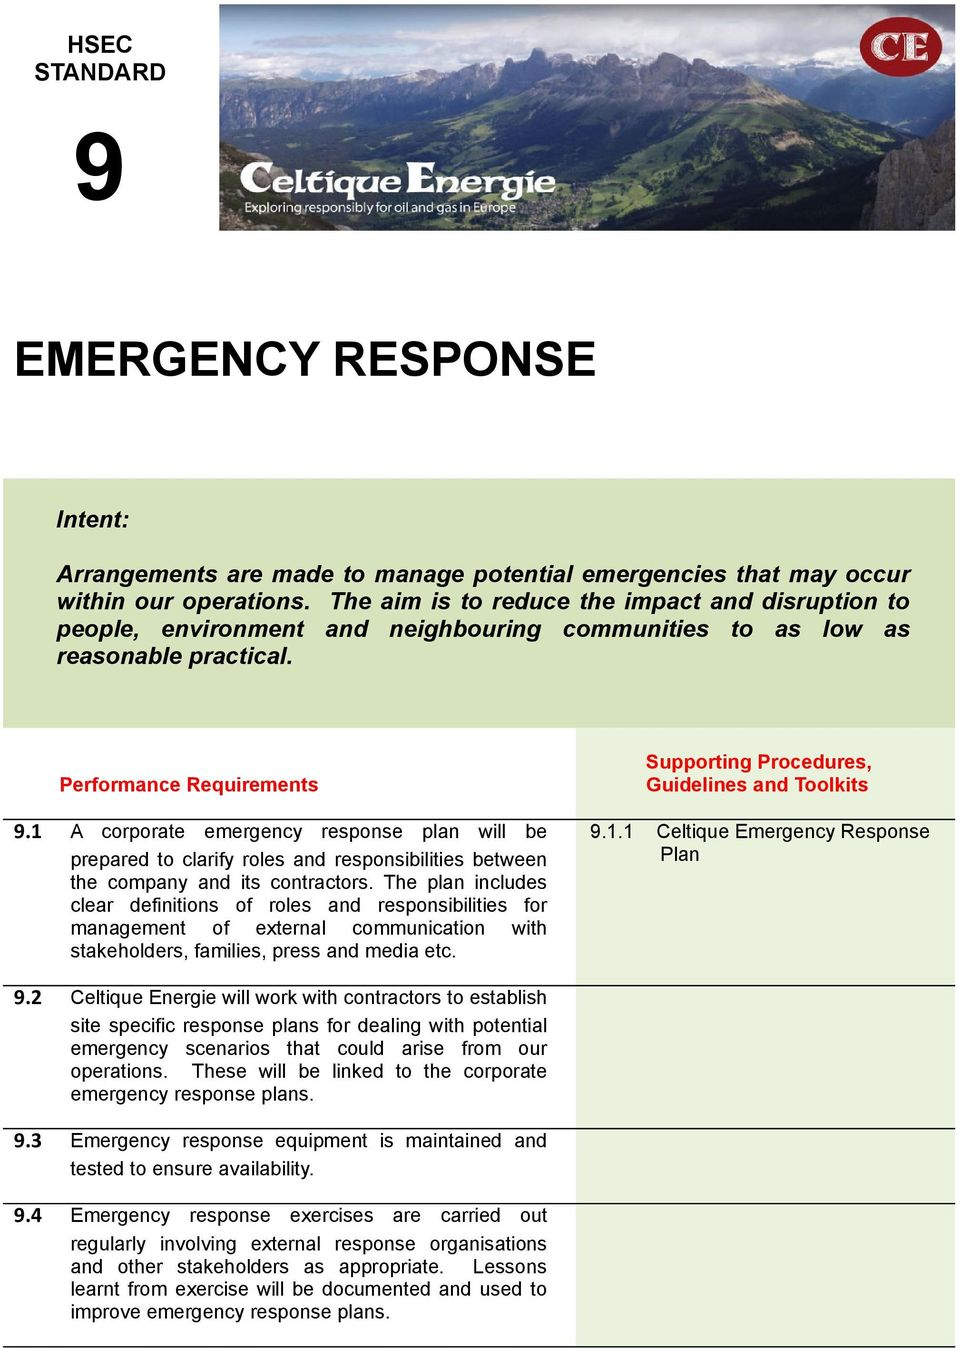 1 A corporate emergency response plan will be prepared to clarify roles and responsibilities between the company and its contractors.